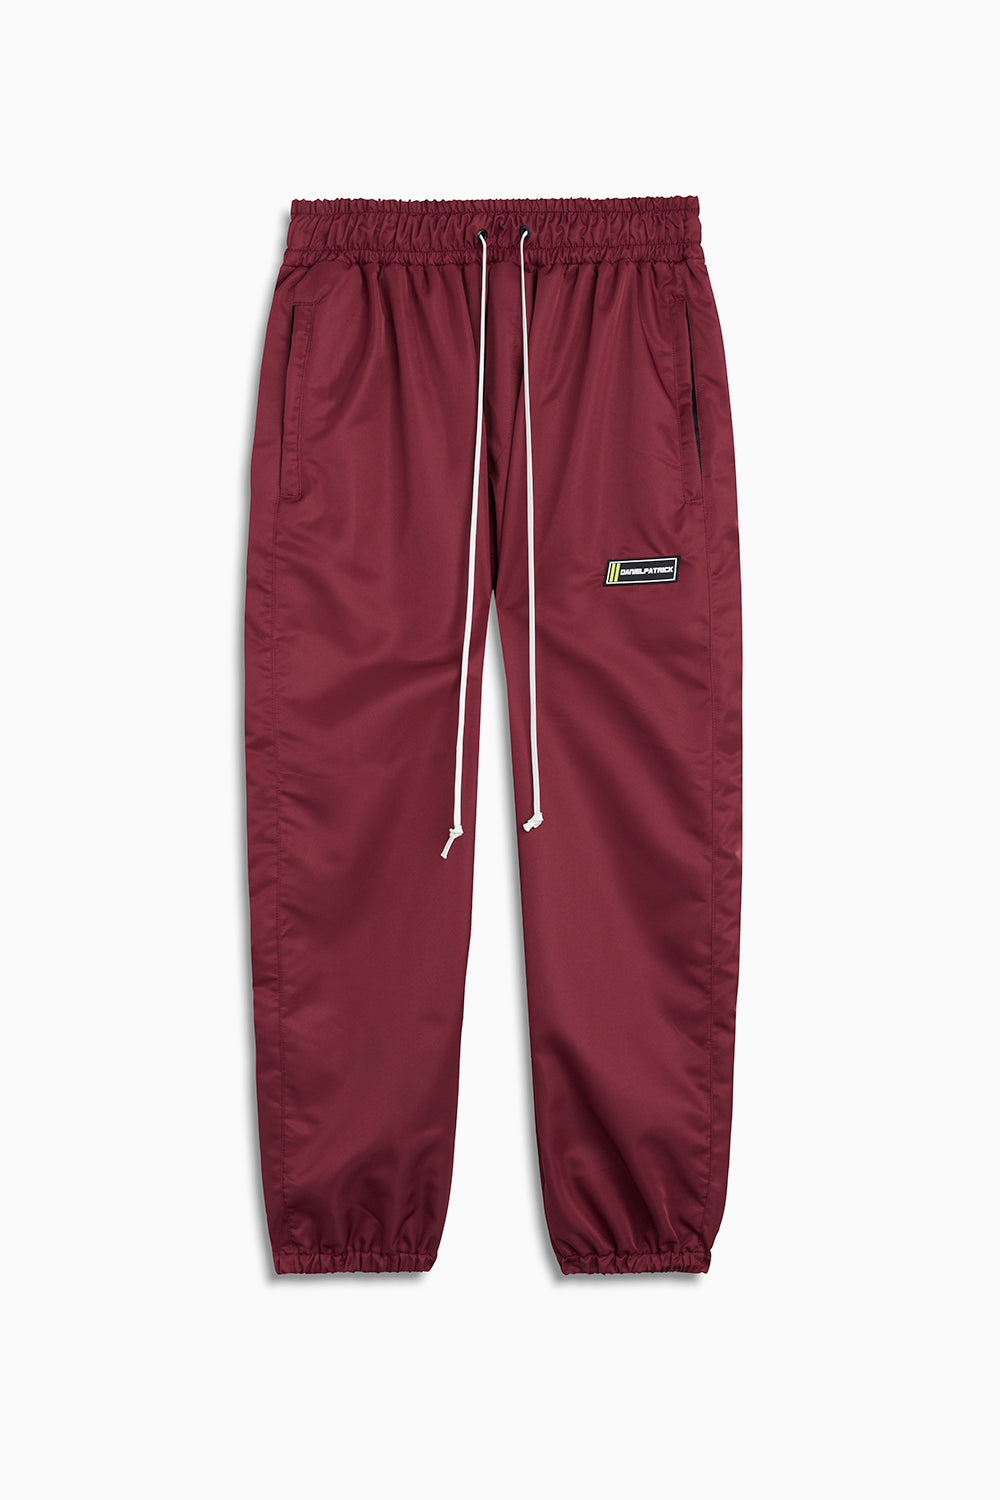 parachute track pant iv in maroon by daniel patrick